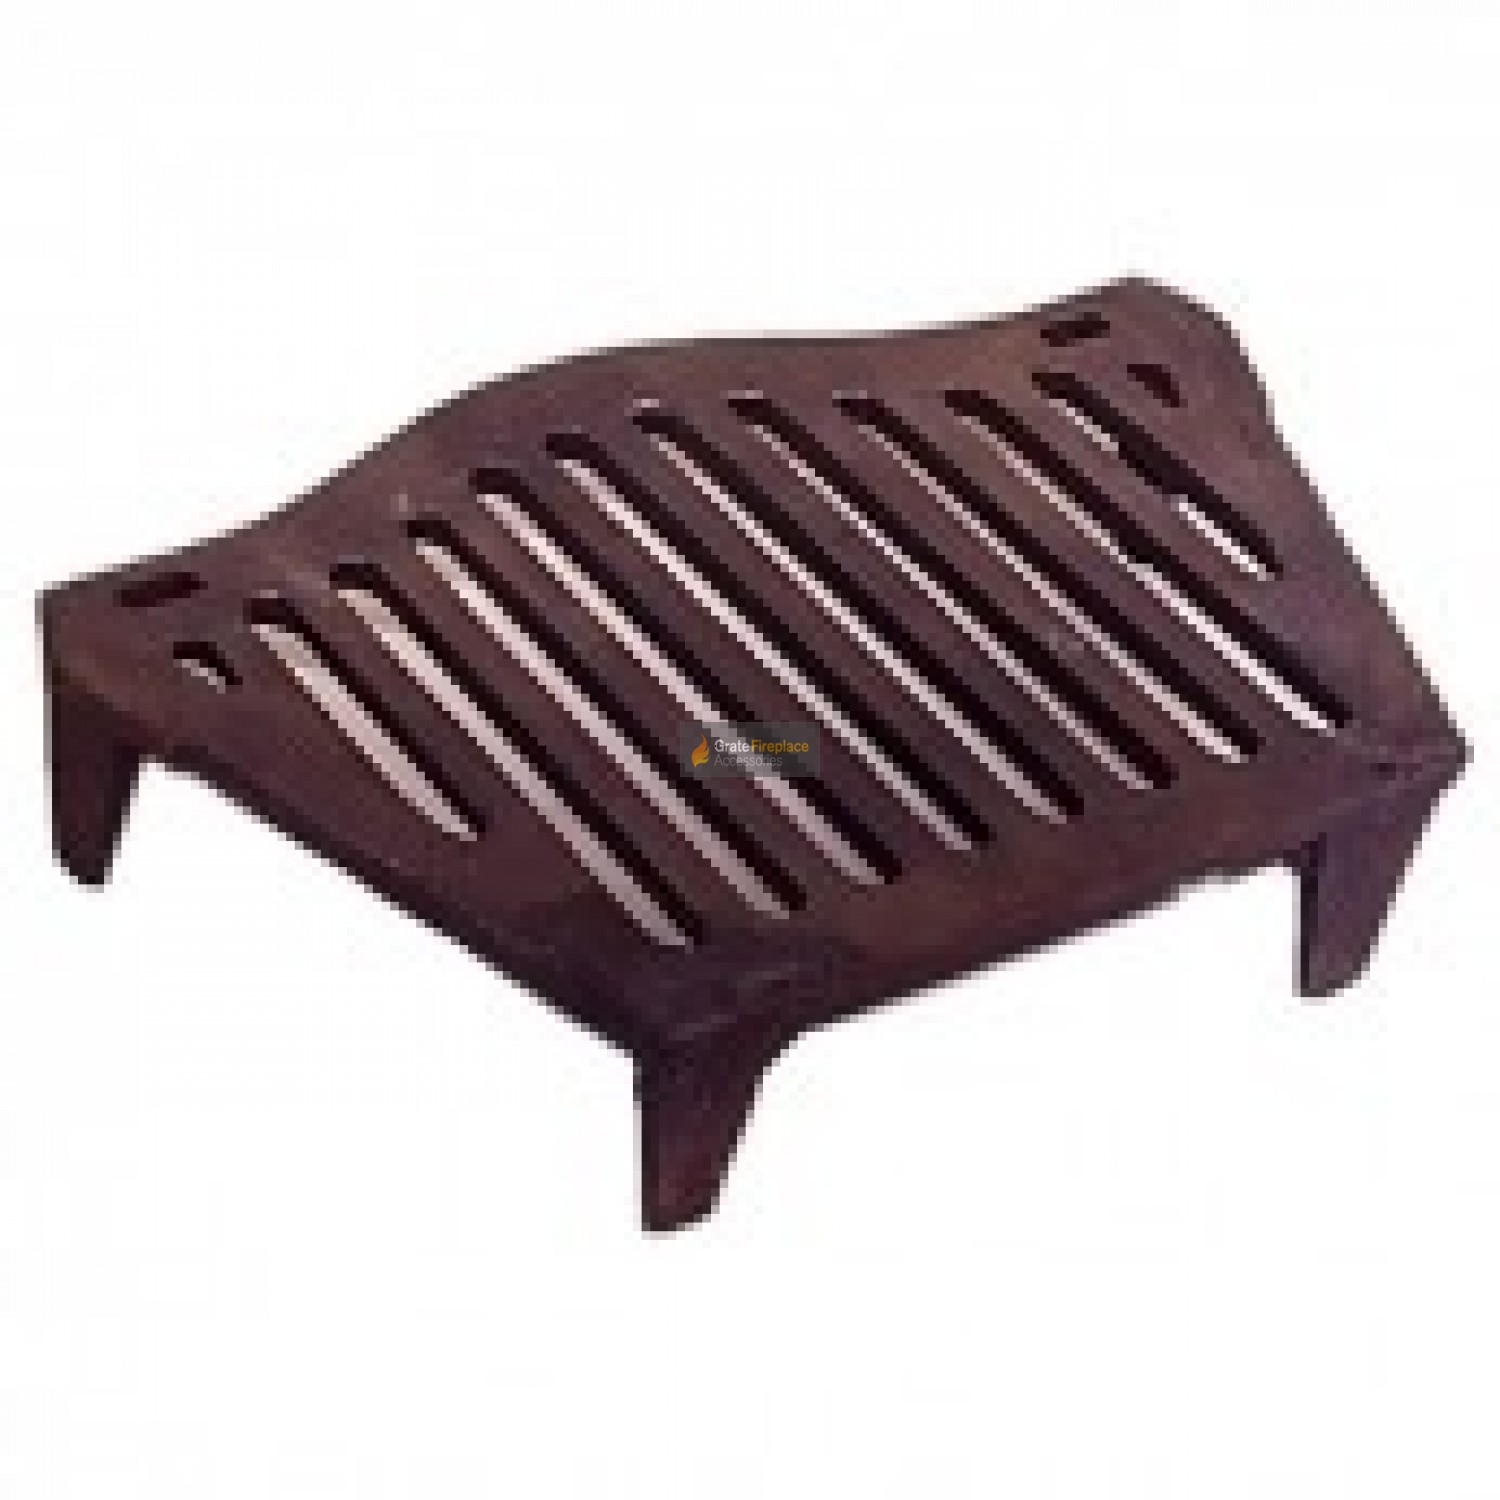 18 Inch Fireplace Grate 18 Inch Cast Iron Fireplace Grate Fireplace Ideas